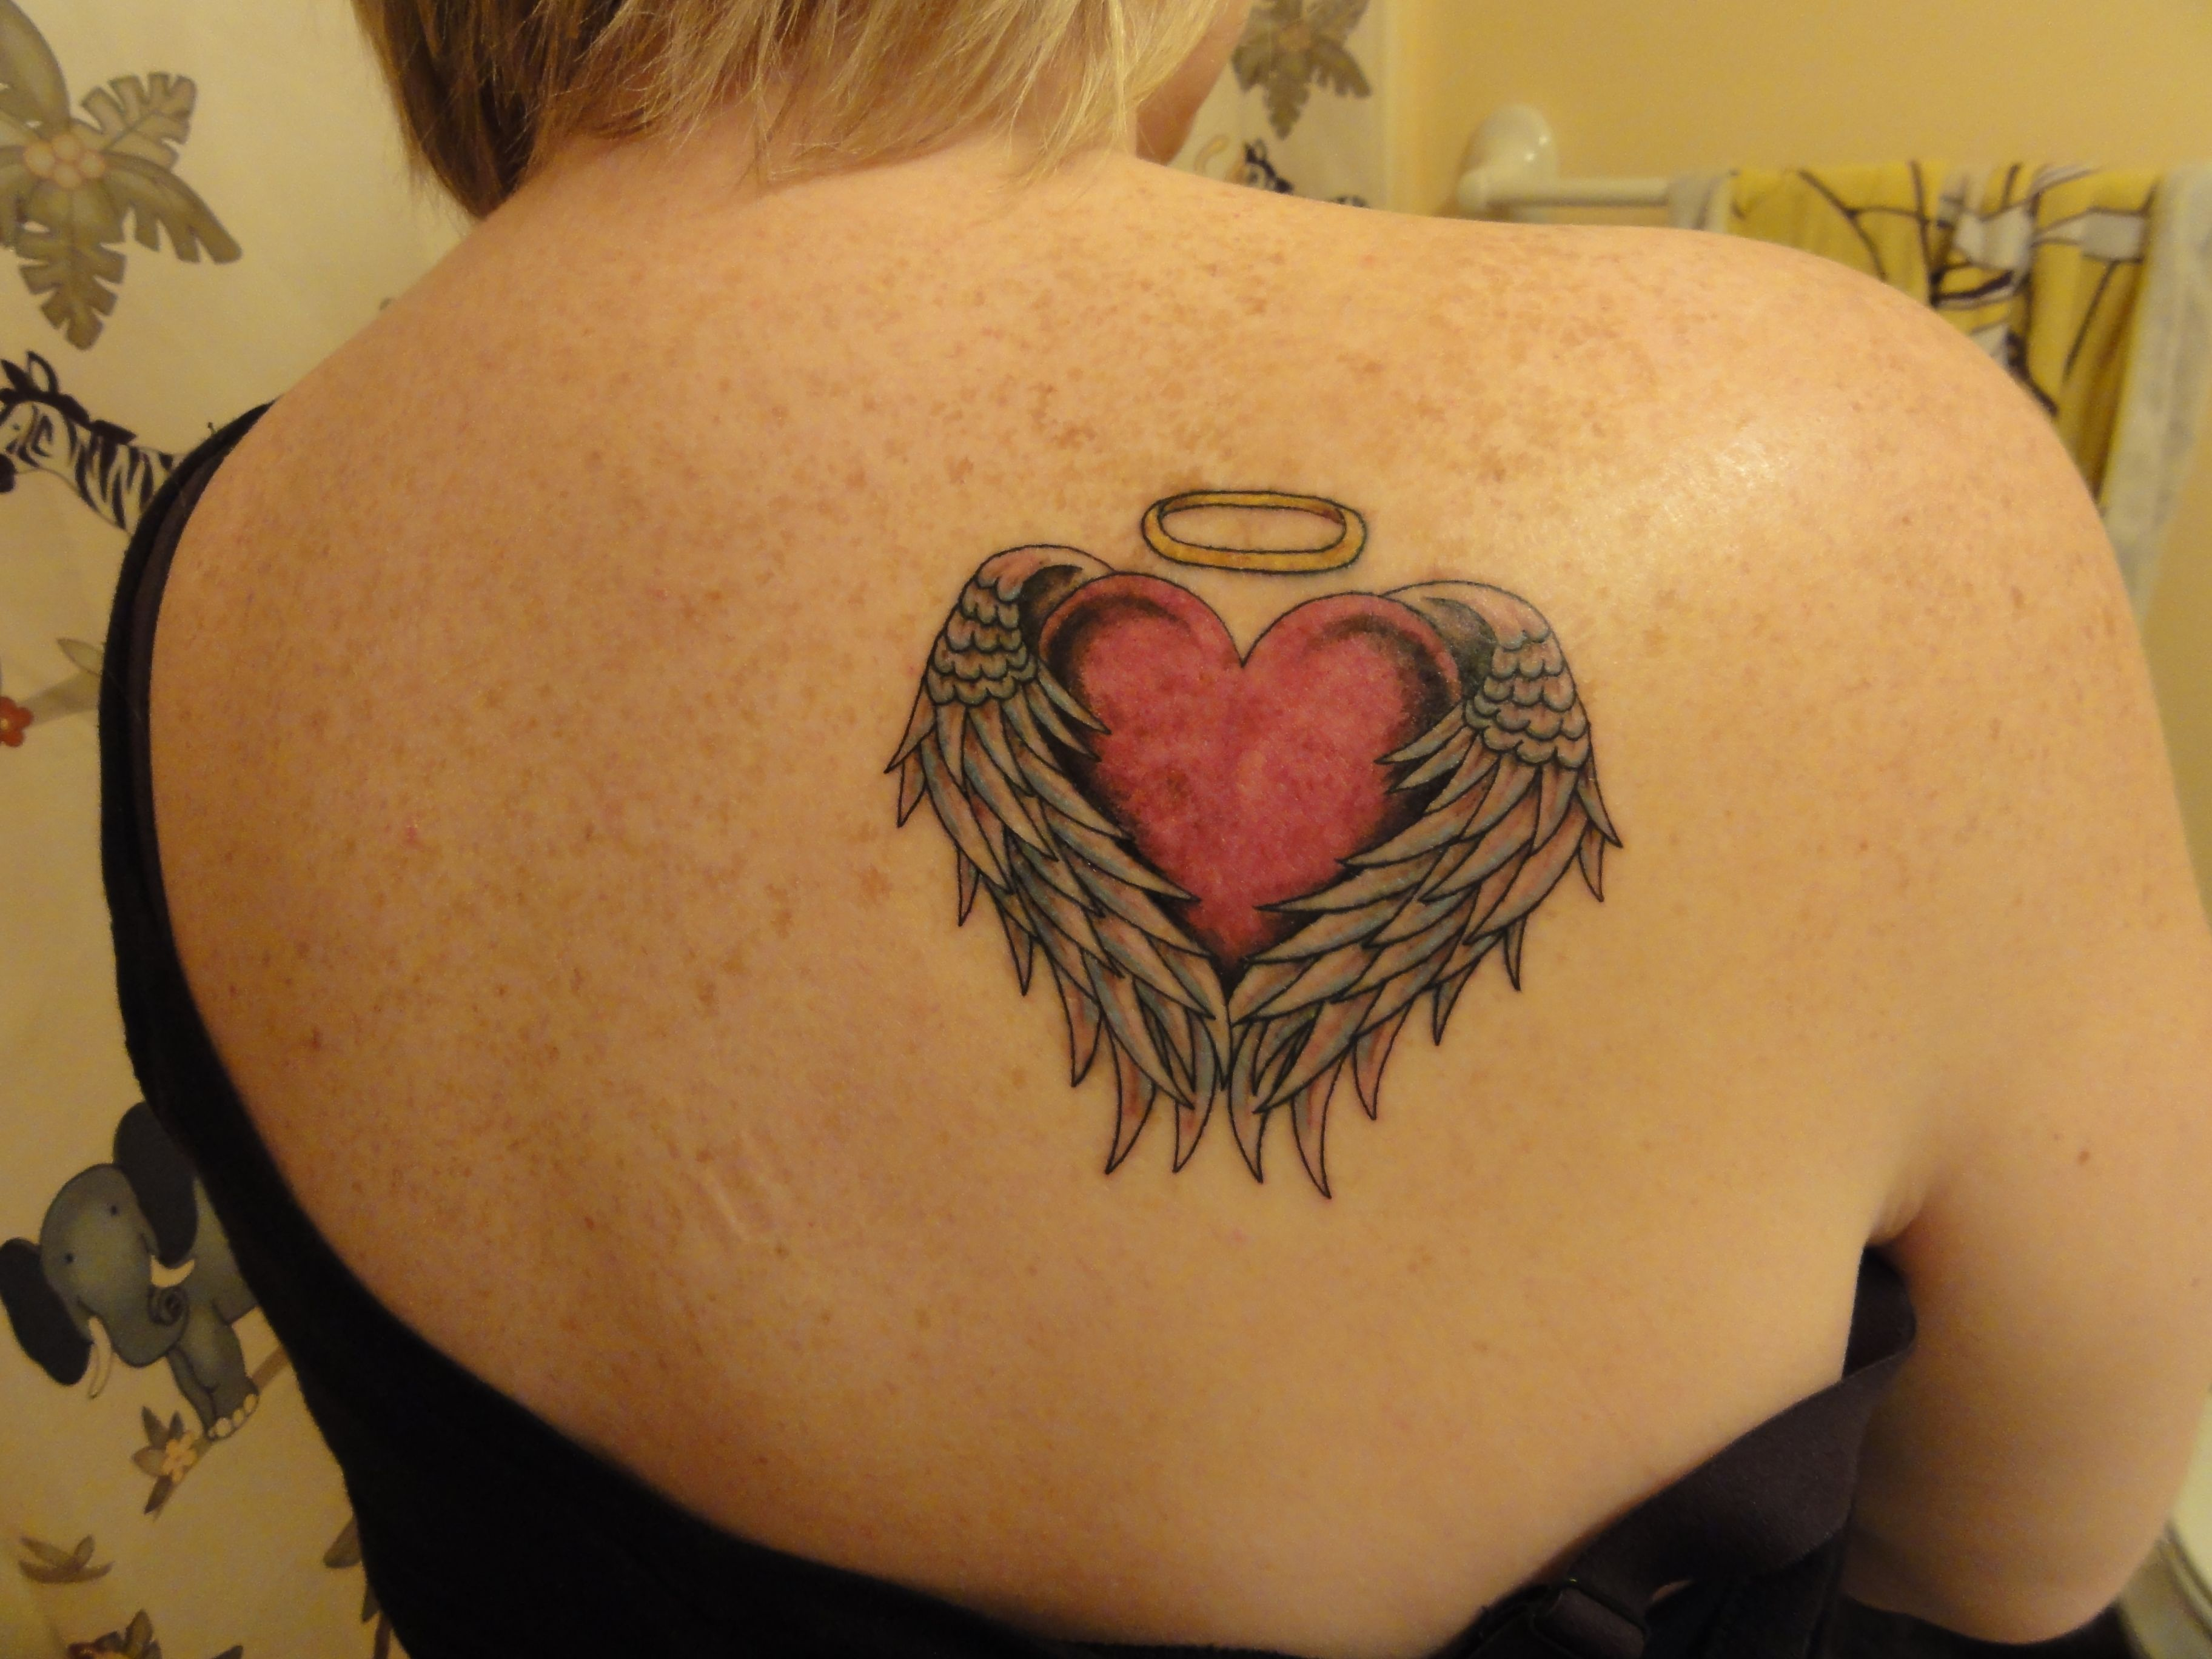 This is my tattoo i got it in memory of my daddy who for Angel tattoos in memory of